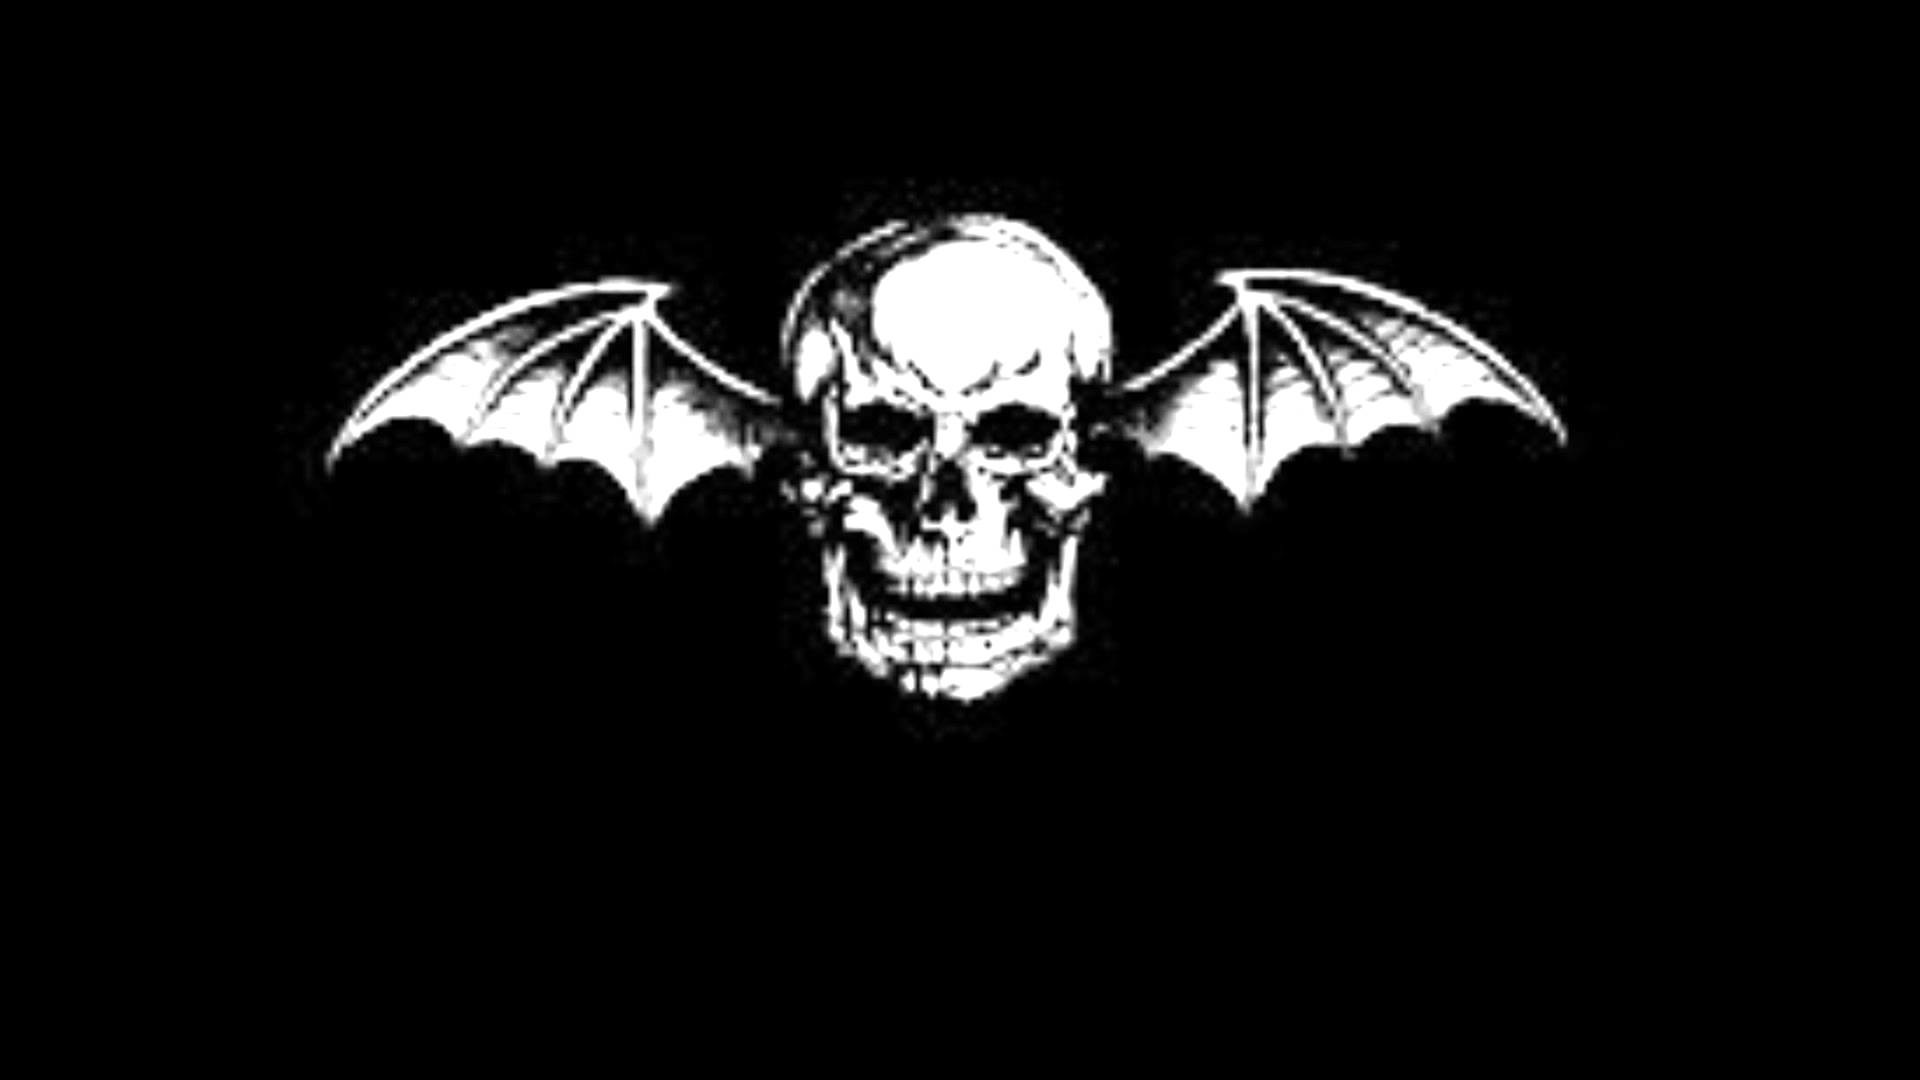 1920x1080 Avenged Sevenfold Deathbat Wallpaper By Chaotichazard On Pictures